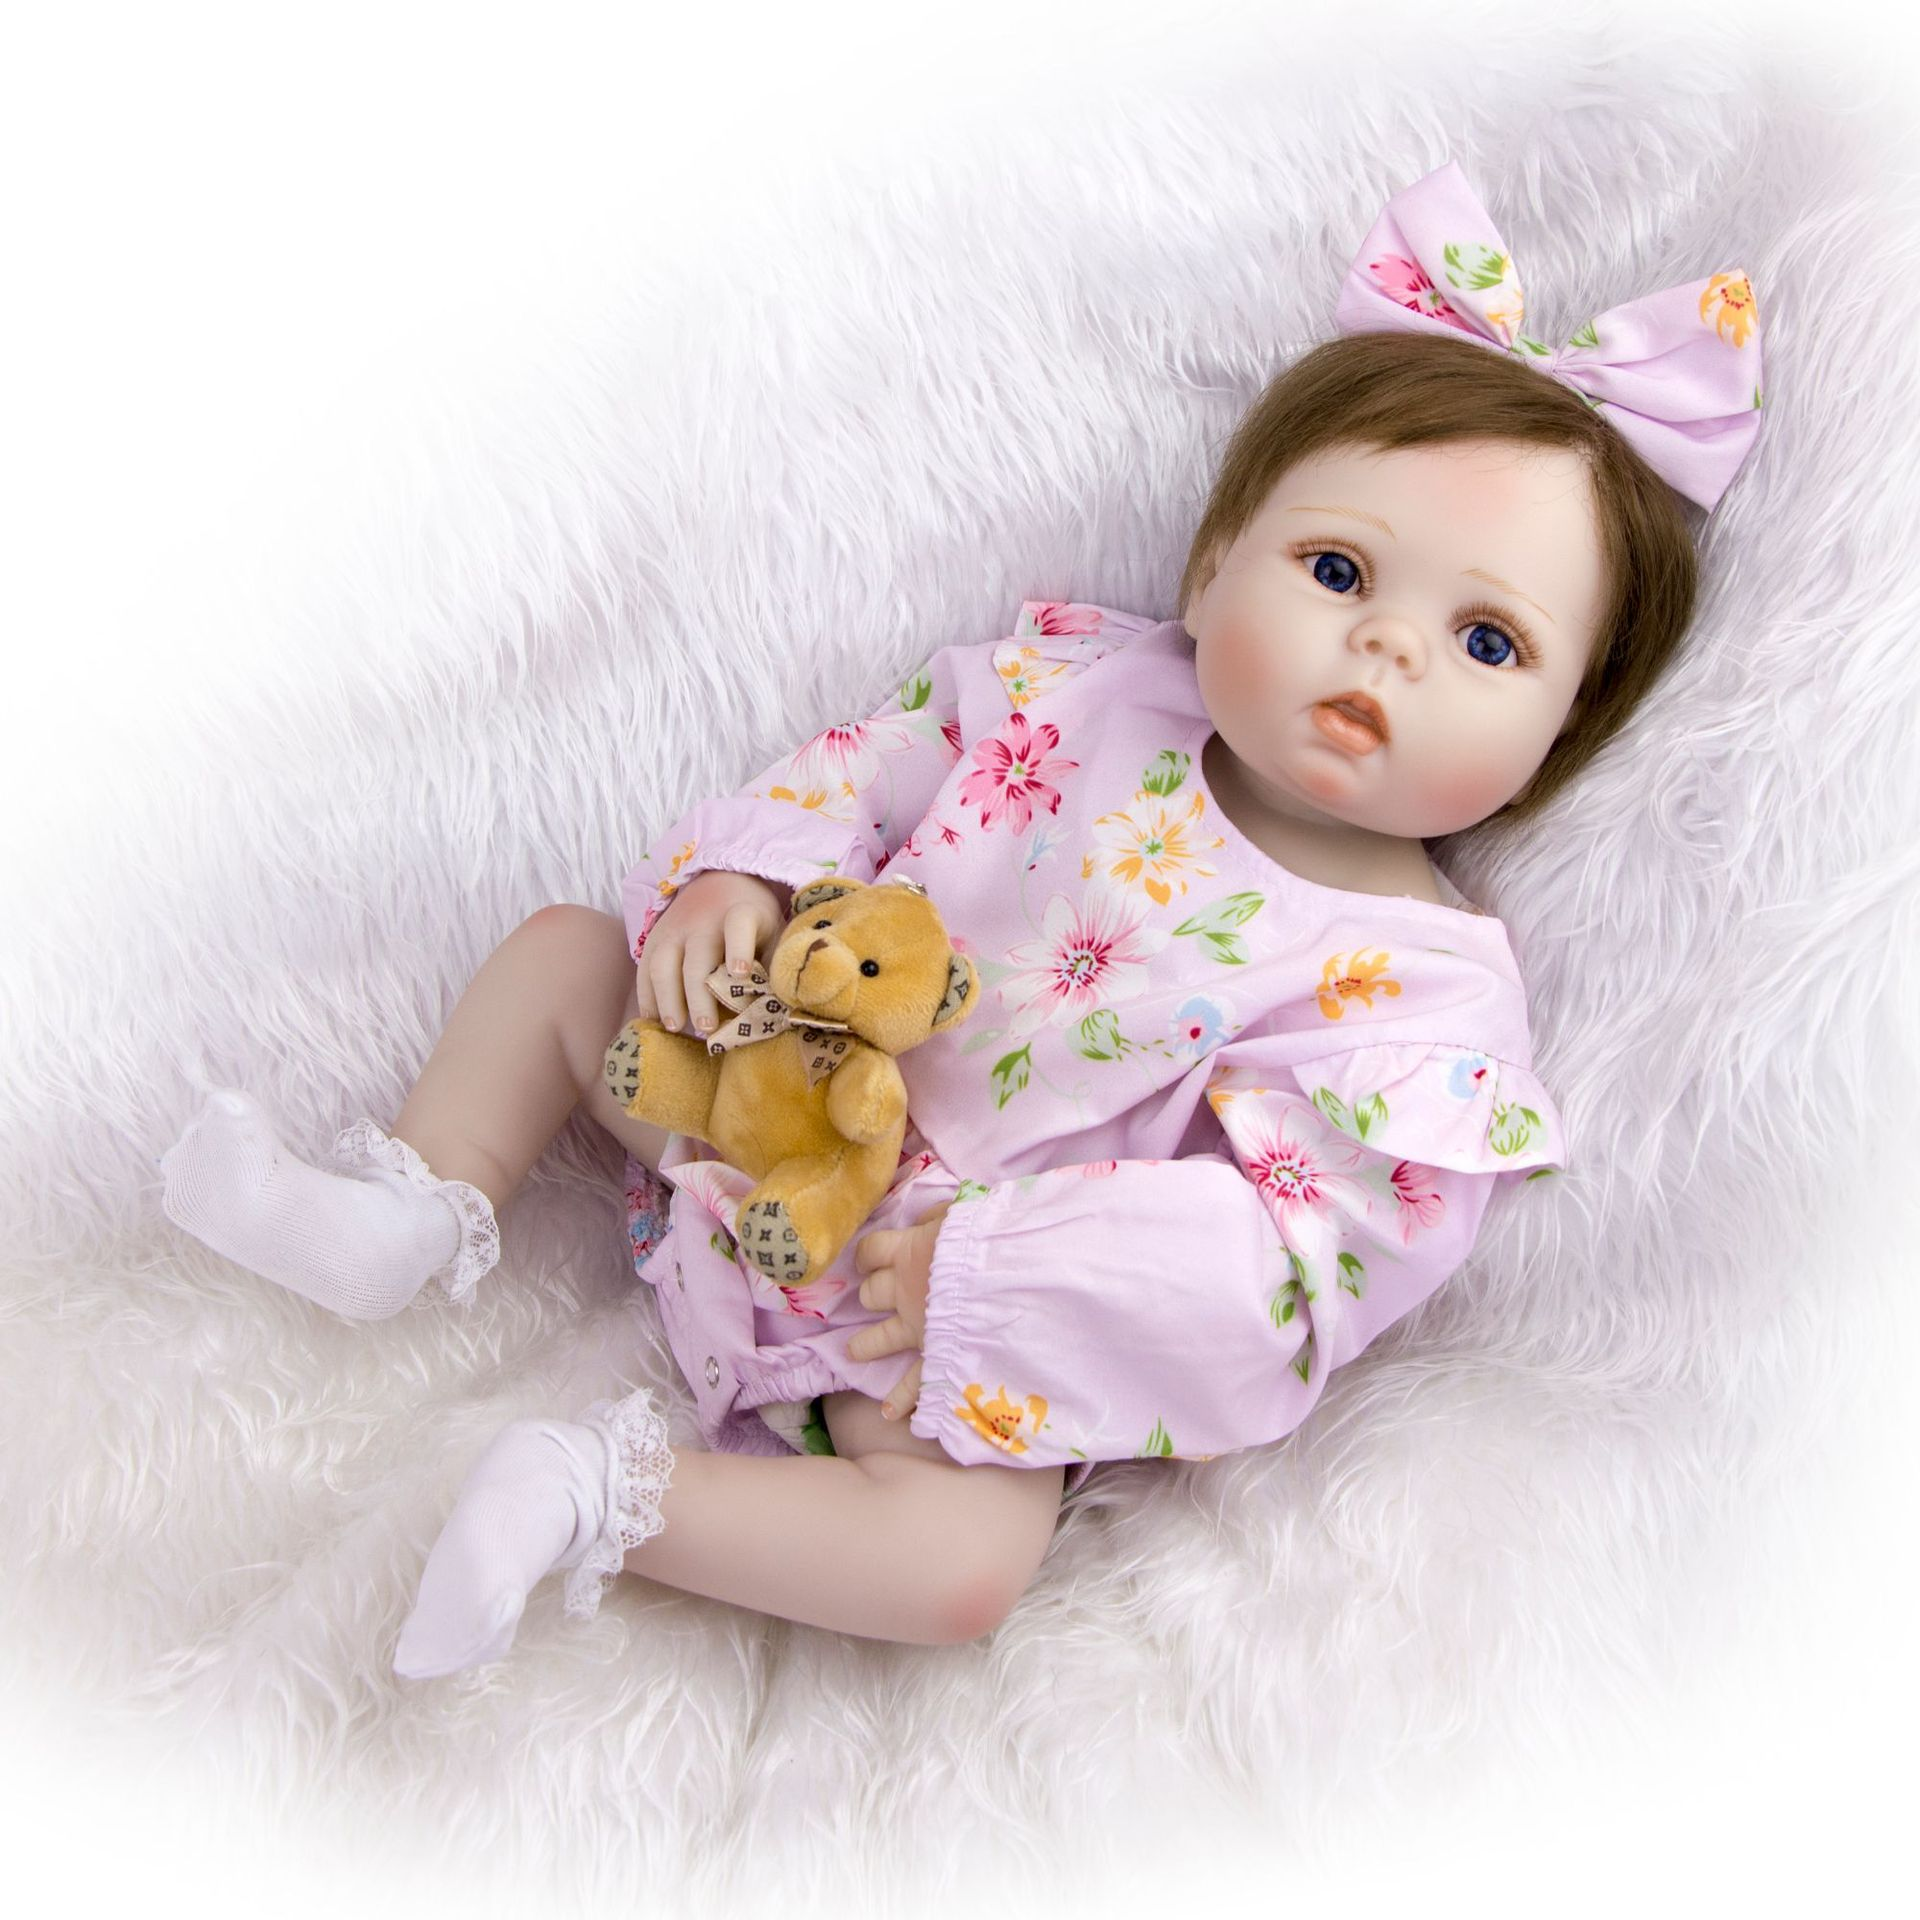 """NPK real baby victoria girl 23"""" full body silicone reborn baby dolls rooted new hair bebes reborn kids toy gift bonecas-in Dolls from Toys & Hobbies    2"""